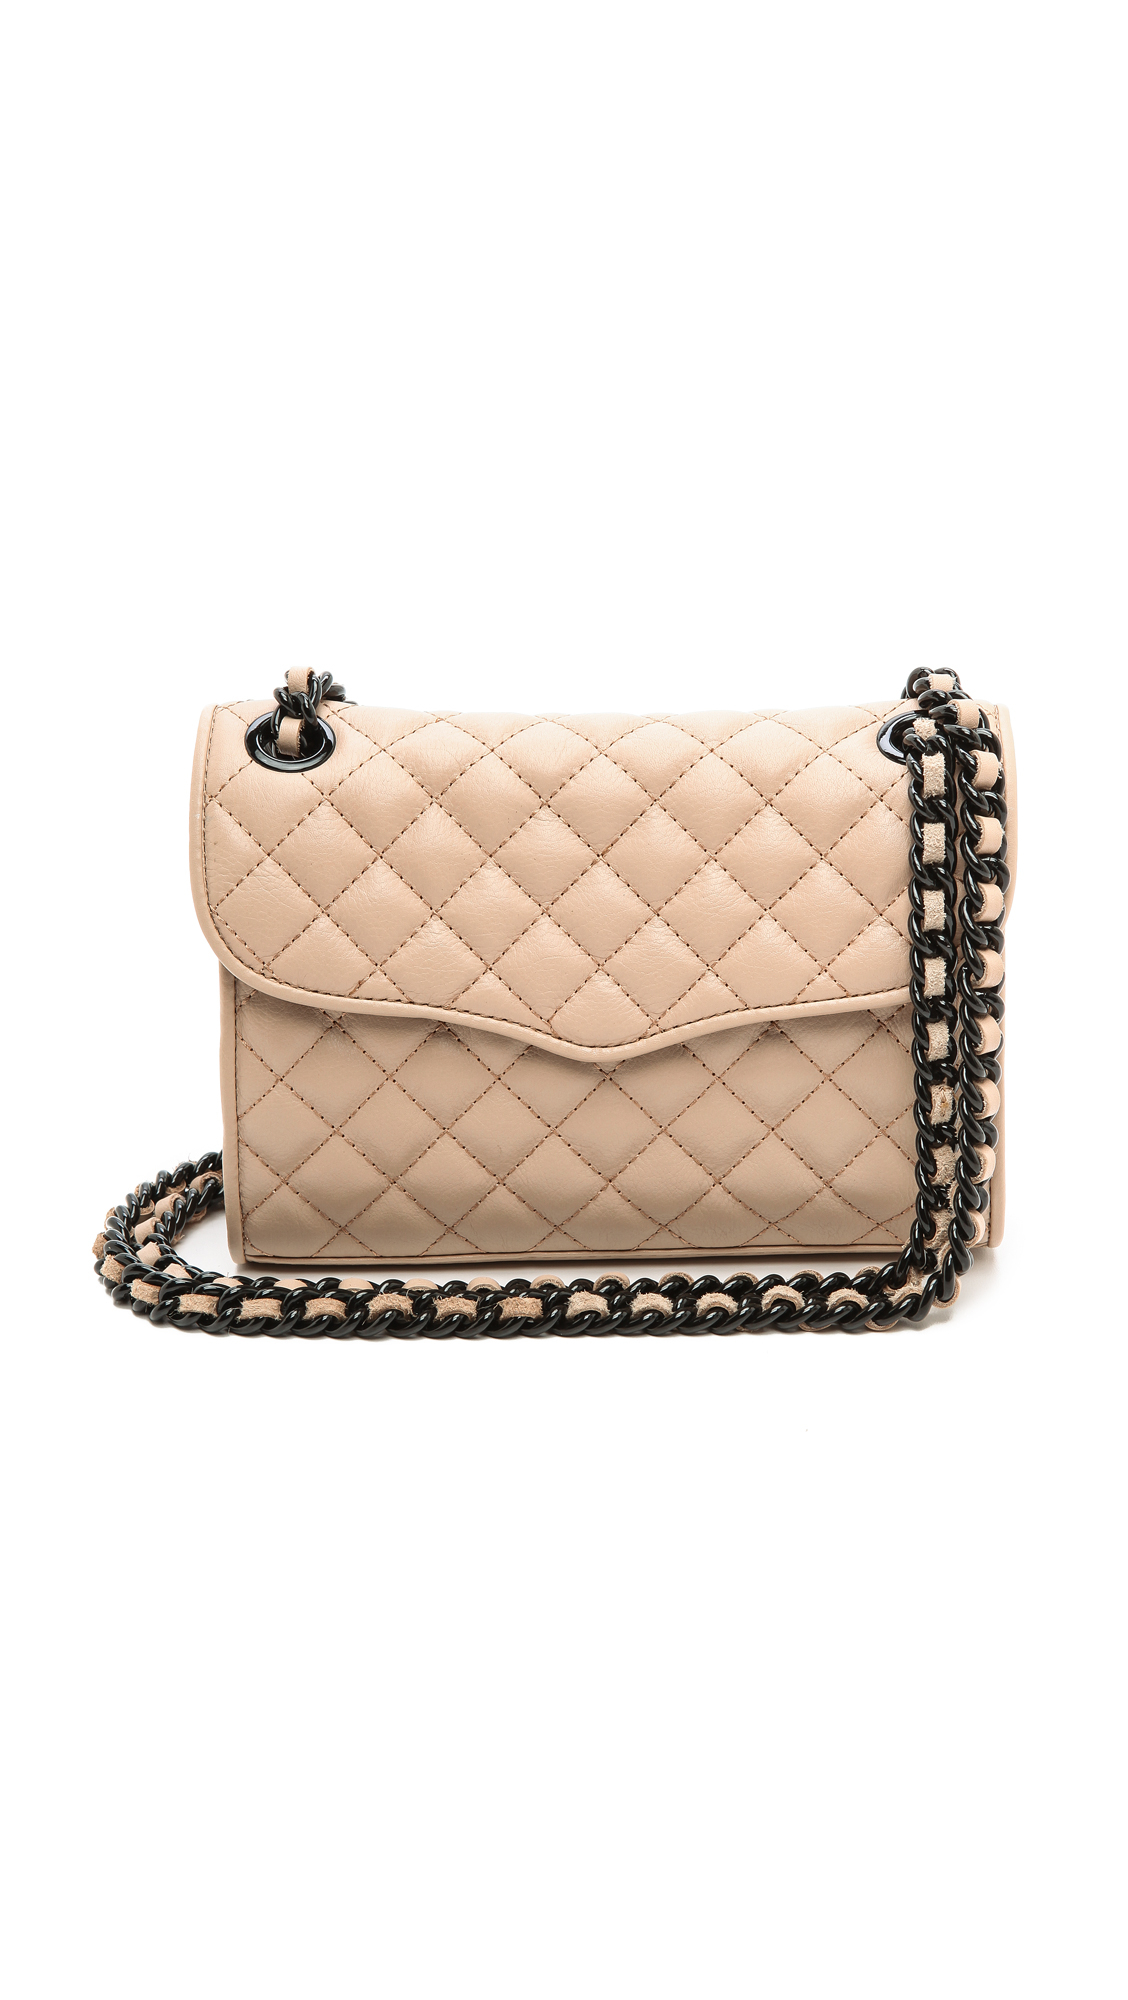 Rebecca Minkoff Quilted Mini Affair Bag Latte In Beige